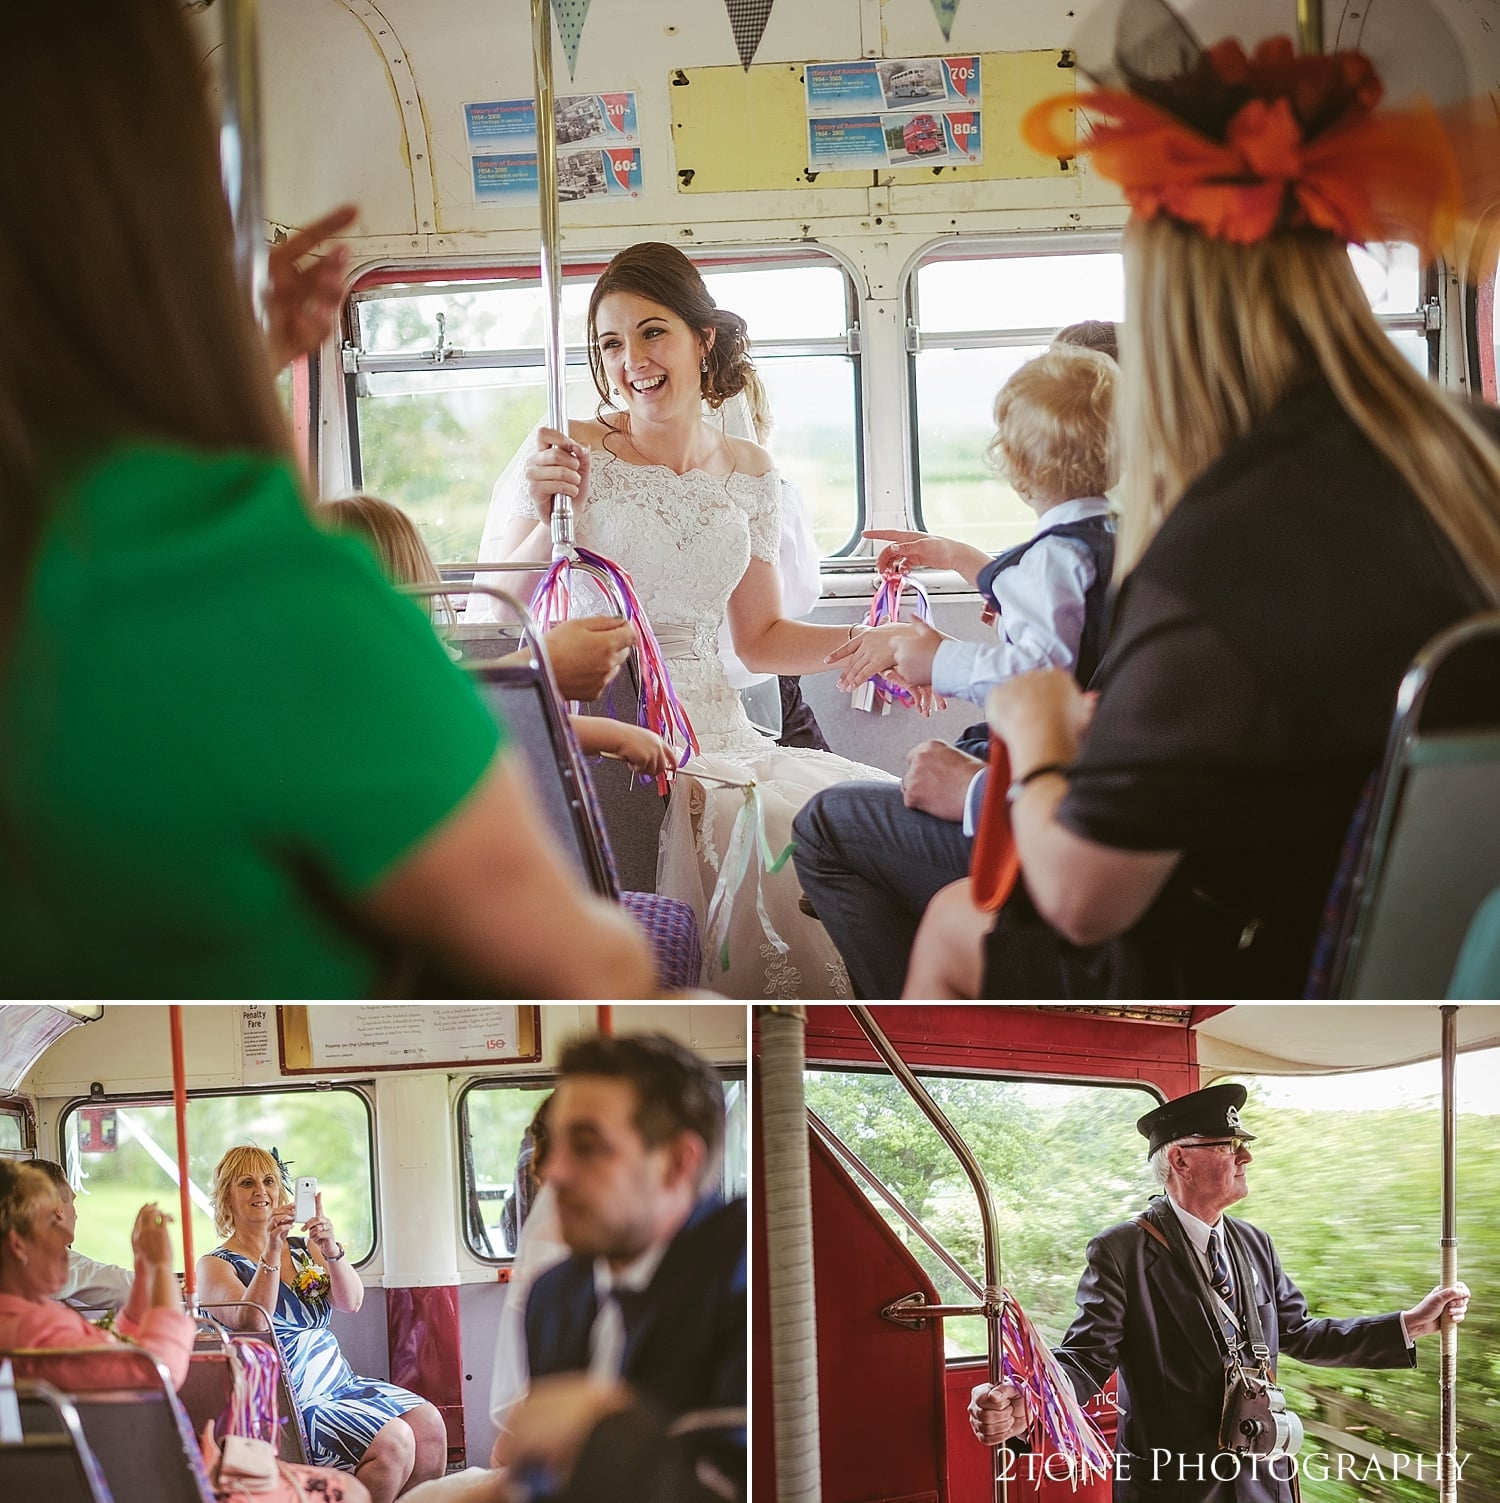 Wedding photographs on the bus by 2tone Photography www.2tonephotography.co.uk